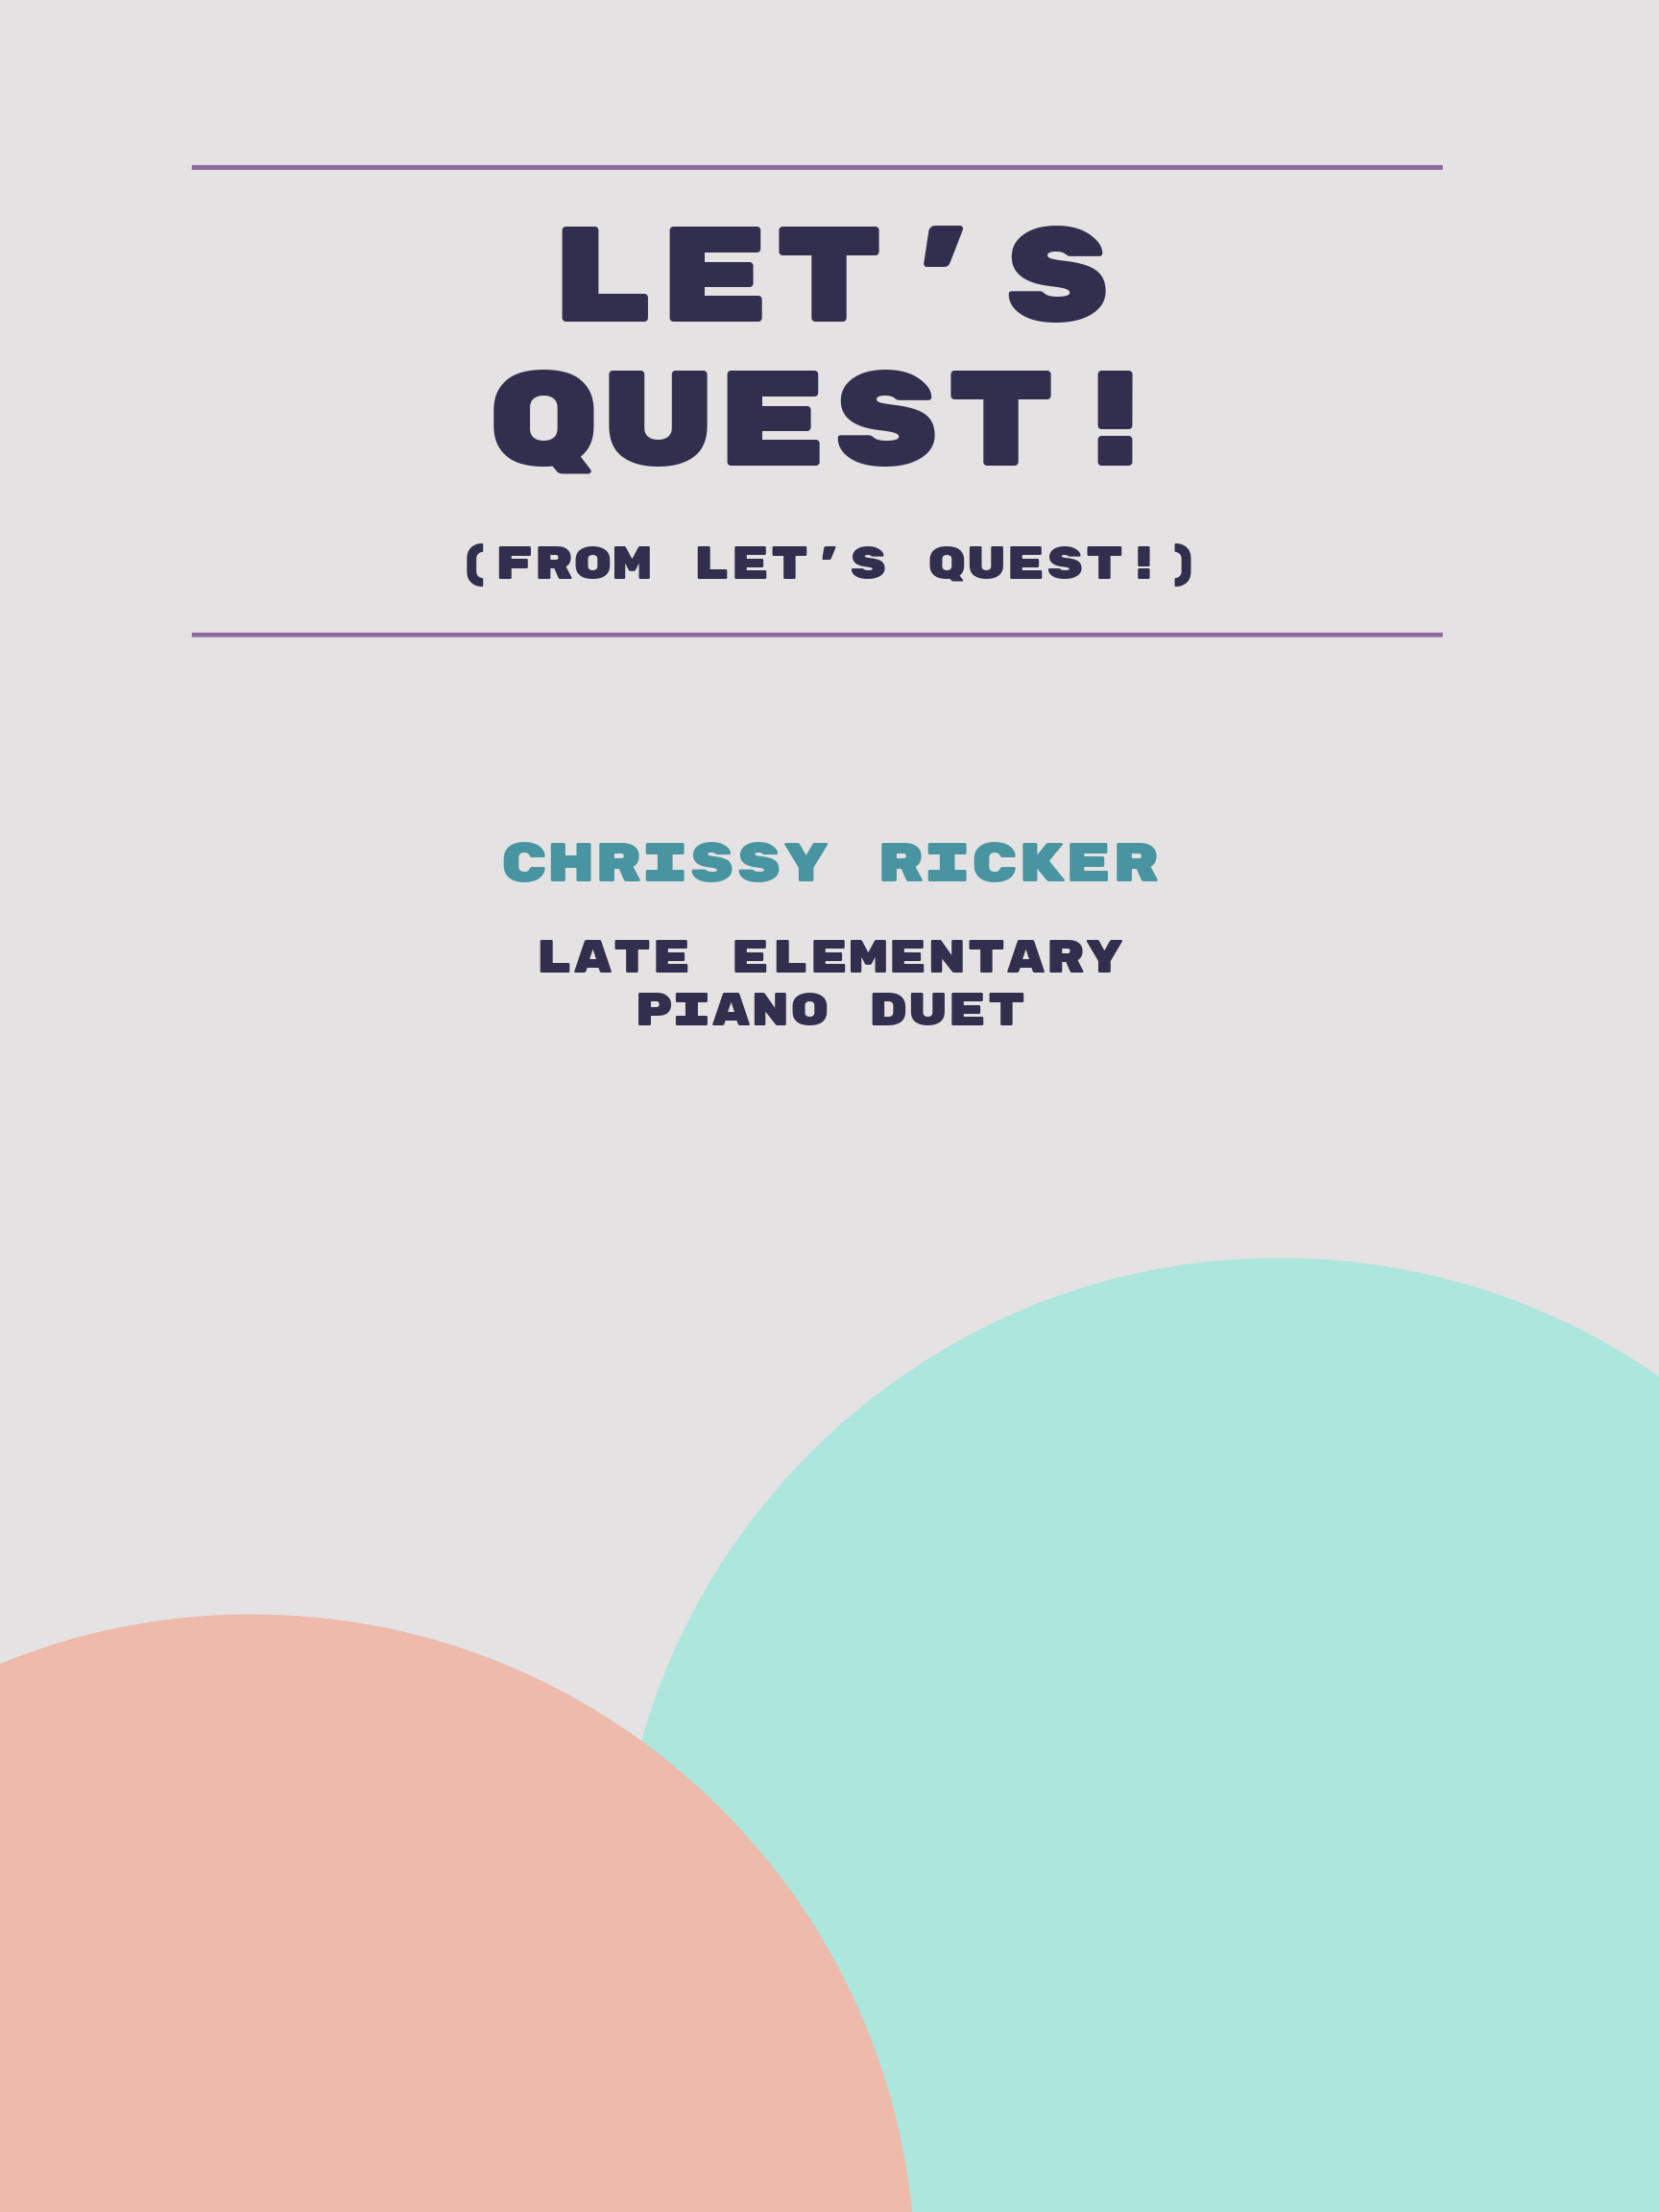 Let's Quest! by Chrissy Ricker